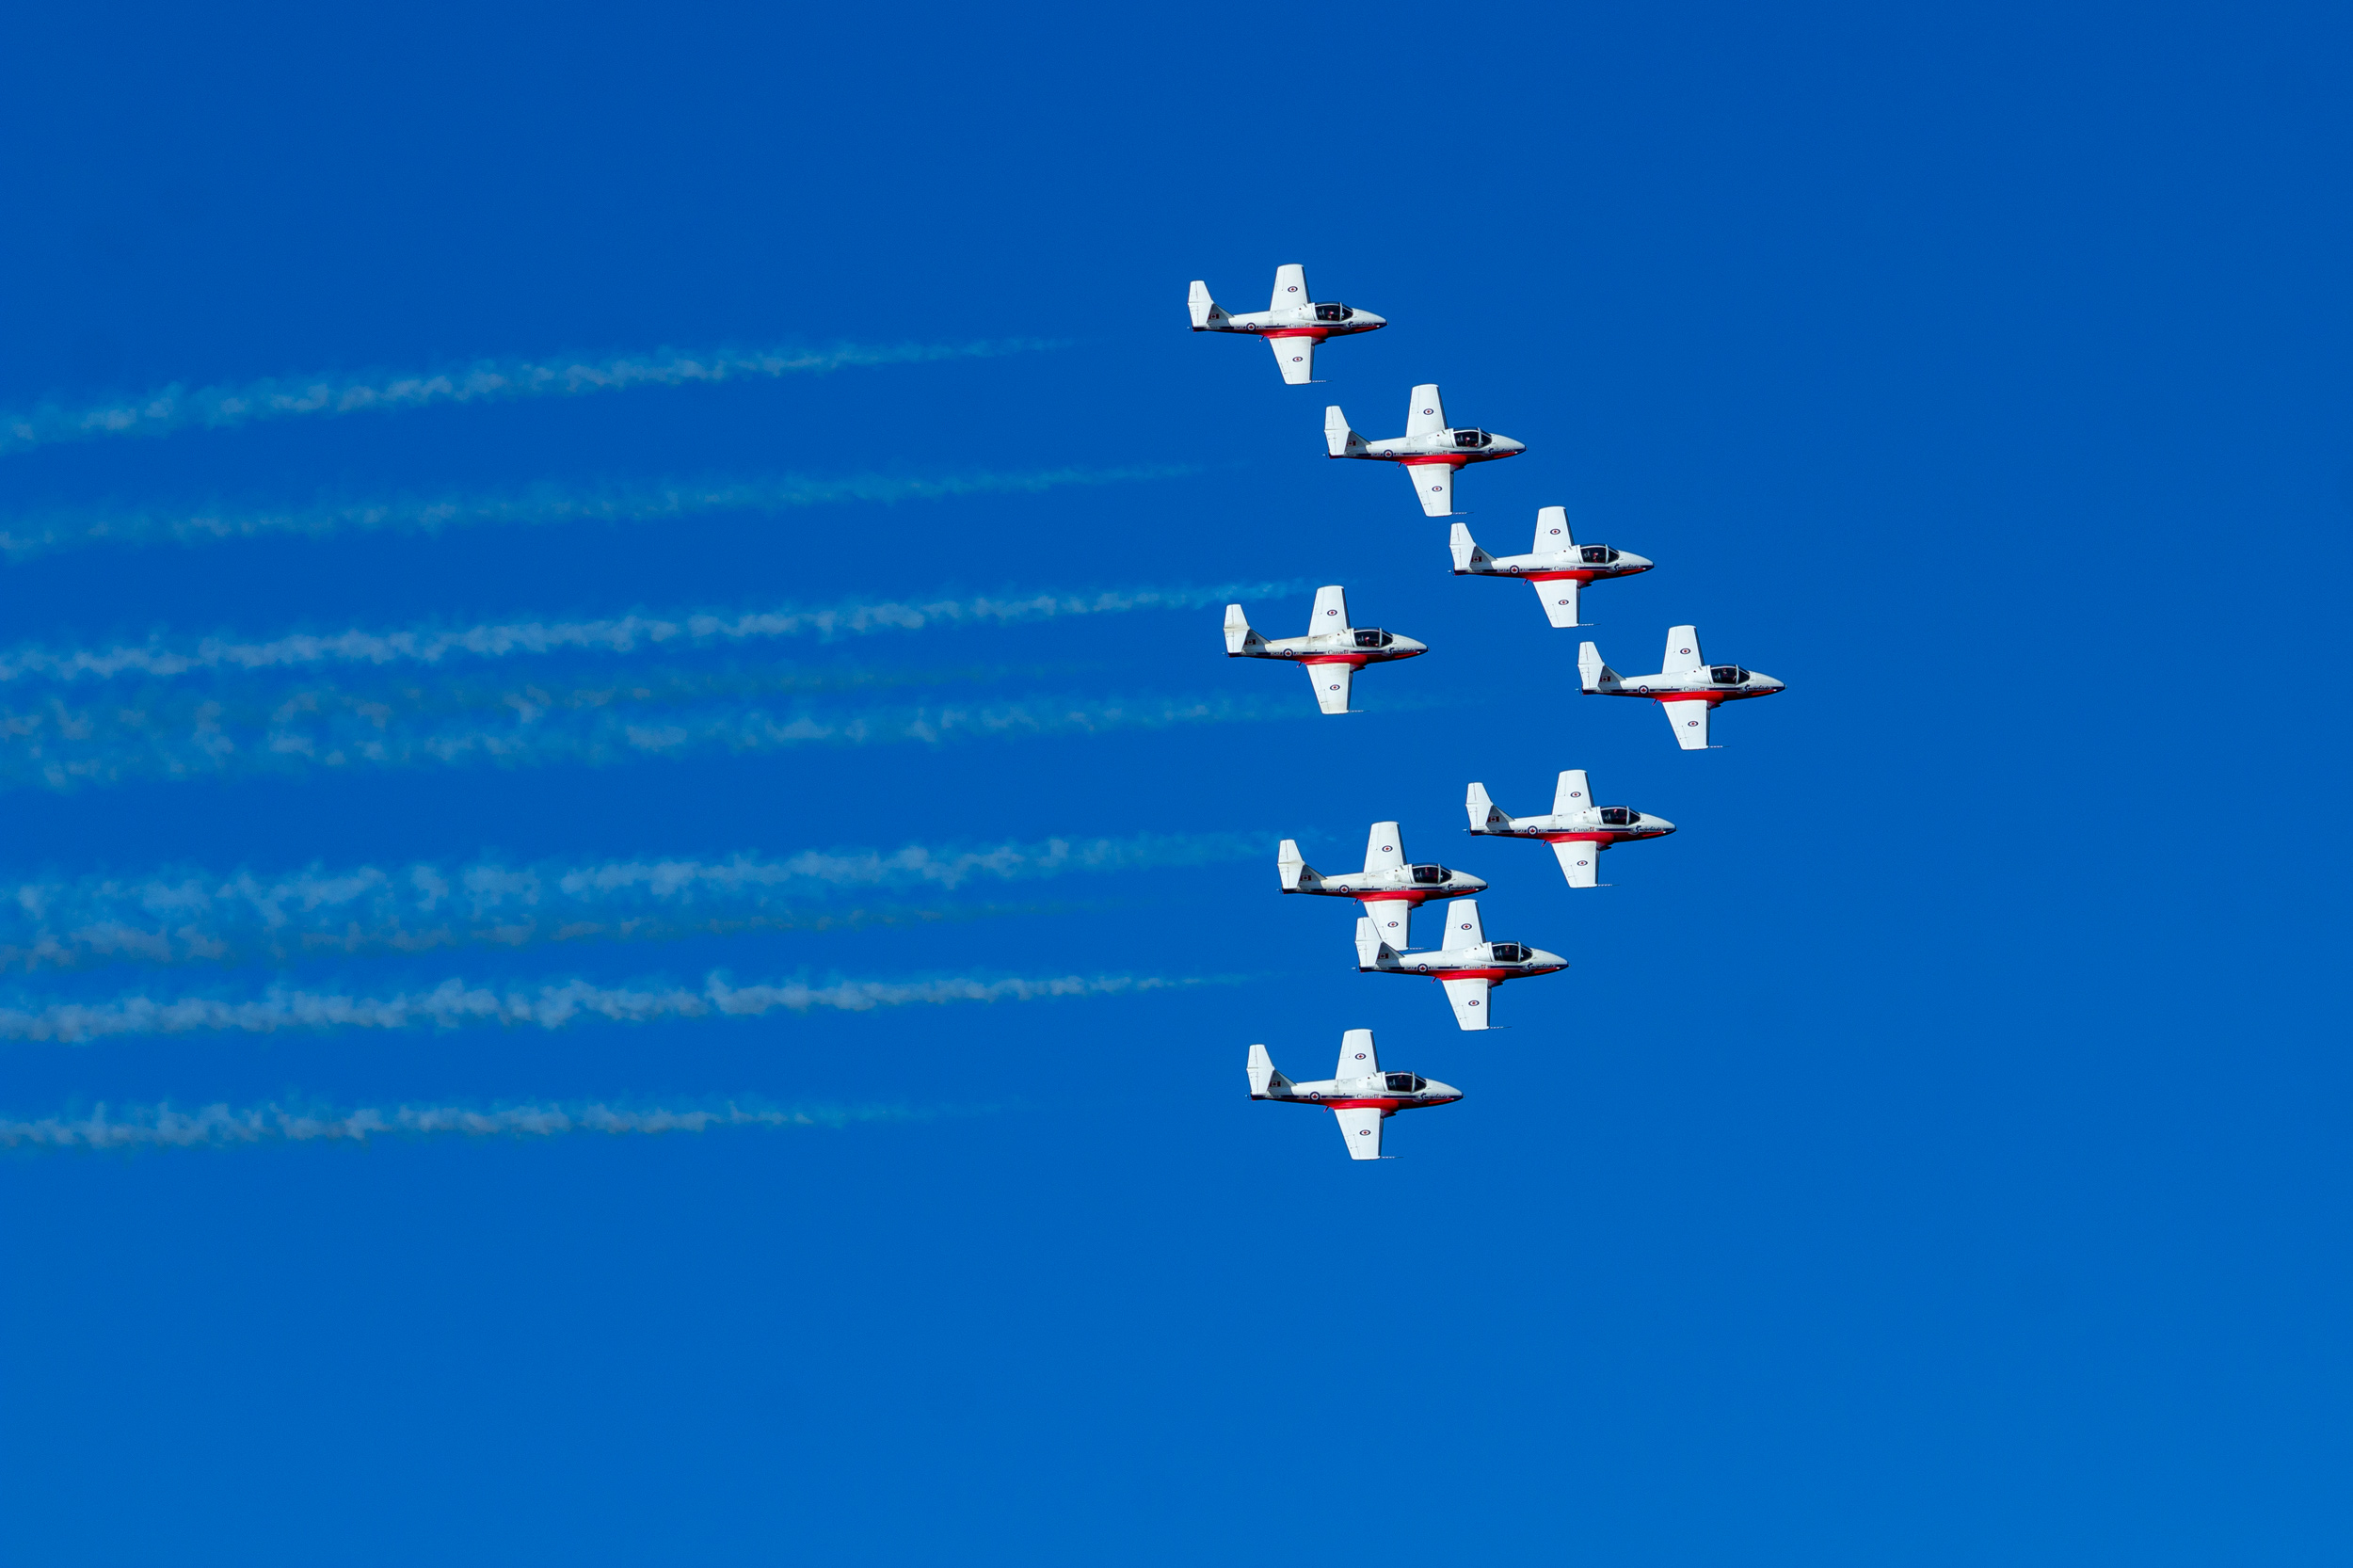 RCAF Snowbirds 2018 - Nanaimo, BC  Copyright © Afro Boy Productions. All rights reserved.